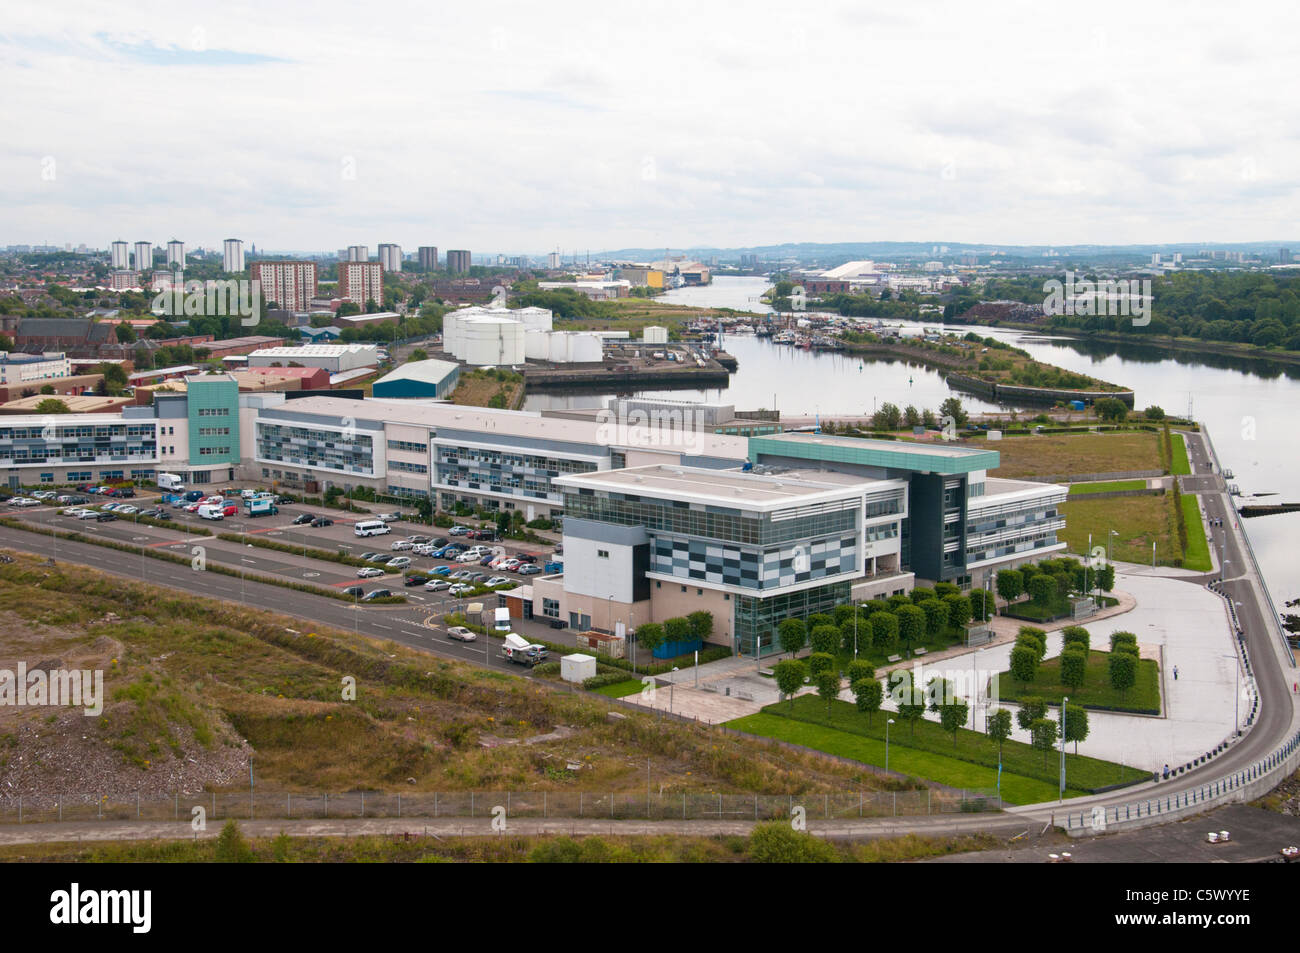 High angle shot of Clydebank College near Glasgow. - Stock Image